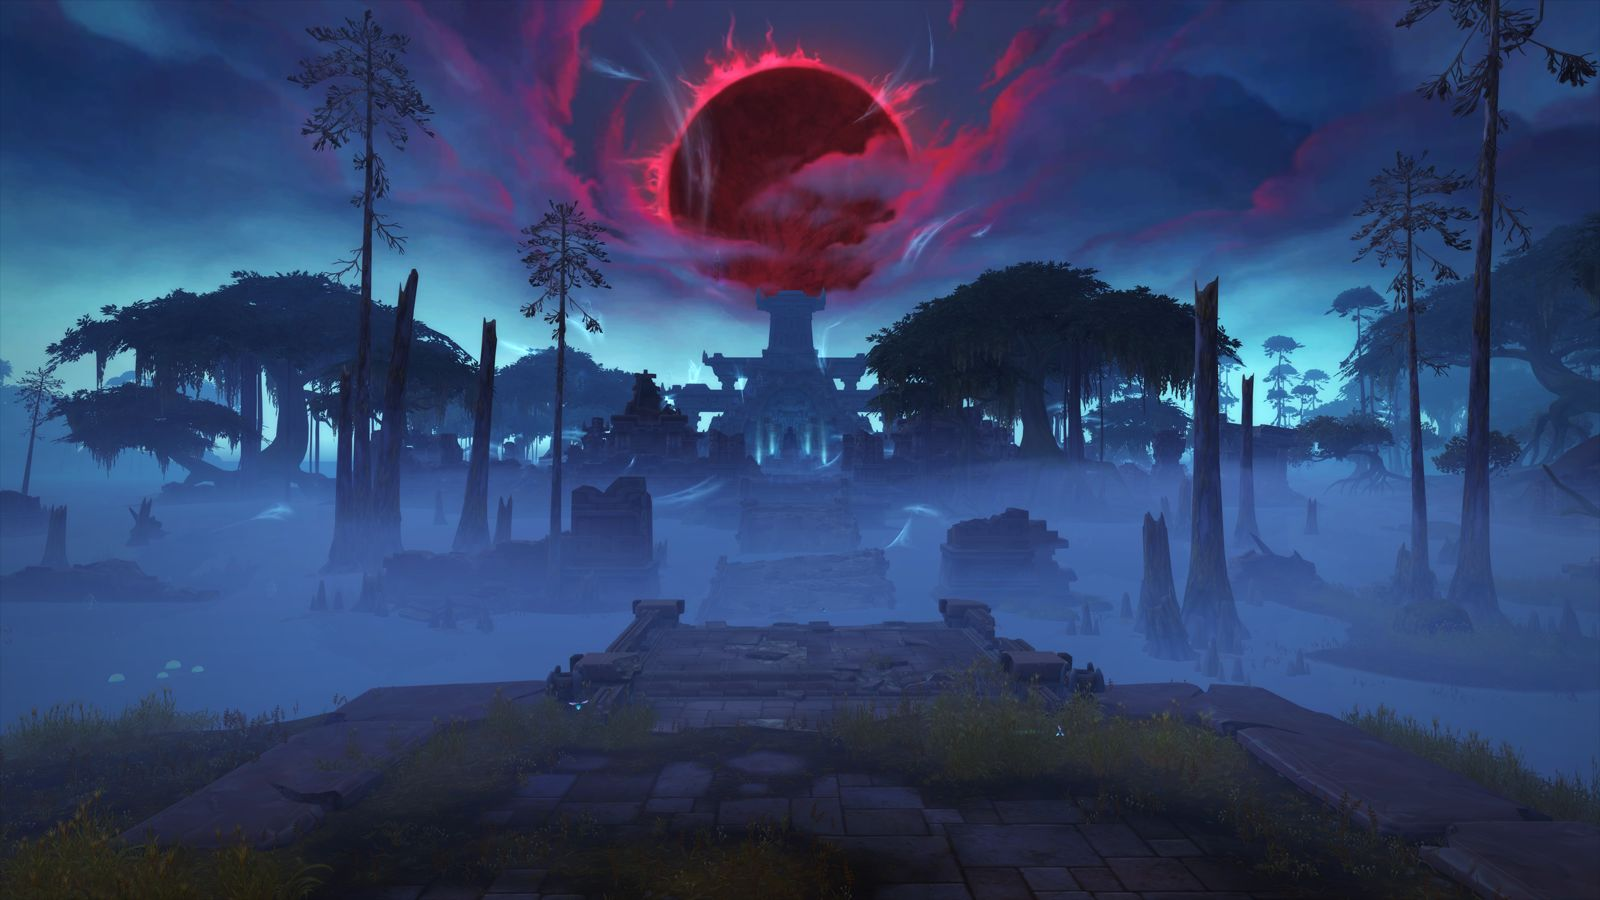 World Of Warcraft Bfa Wallpaper: World Of Warcraft's Next Expansion Is Battle For Azeroth